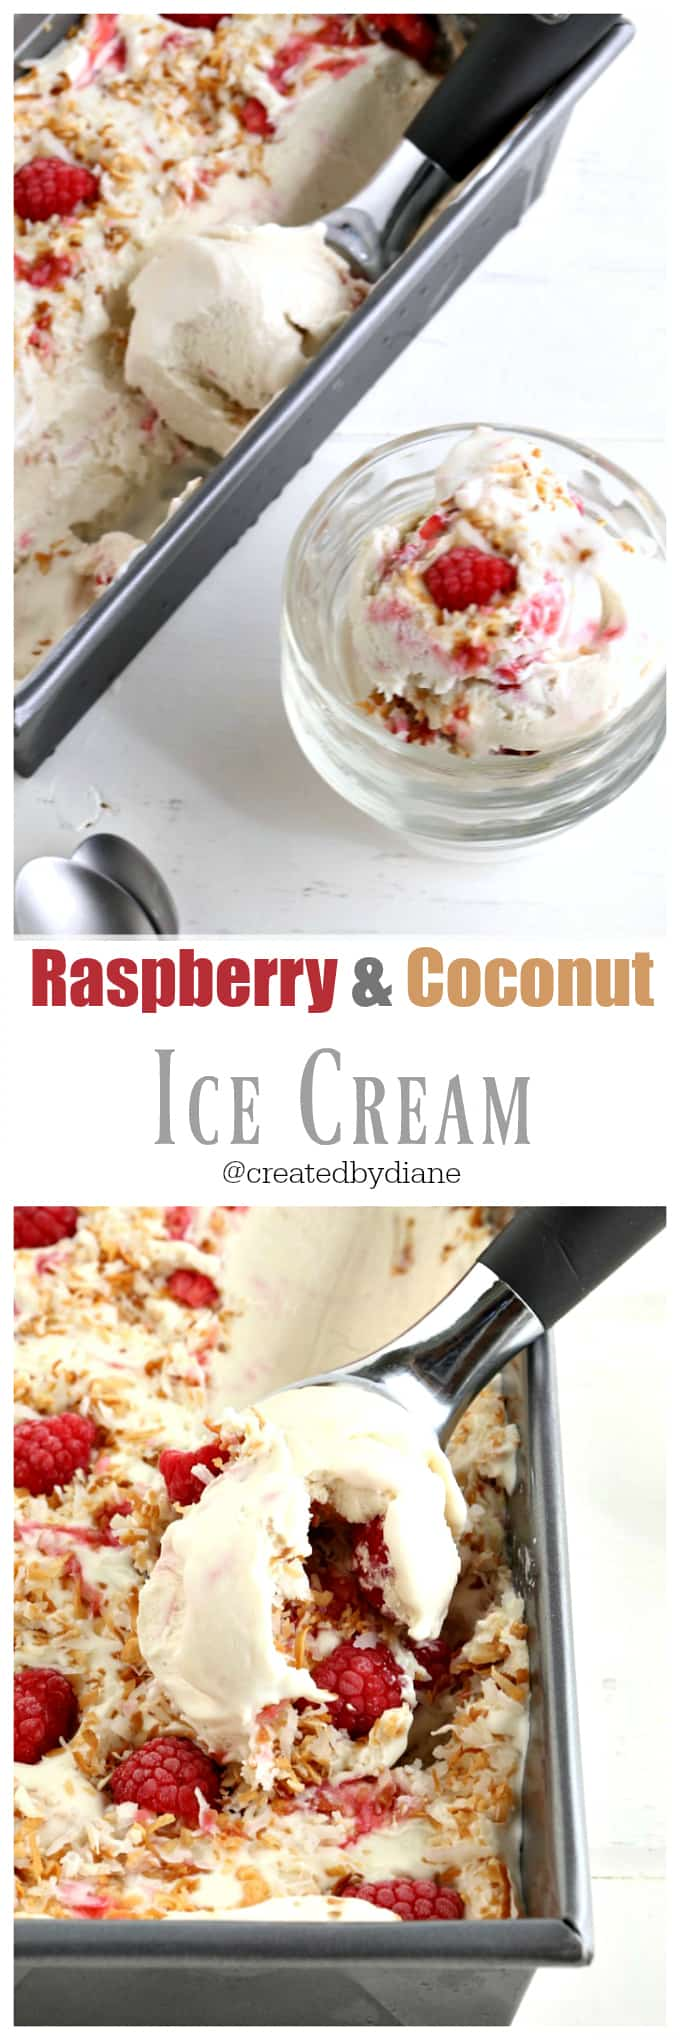 raspberry and coconut ice cream from @createdbydiane